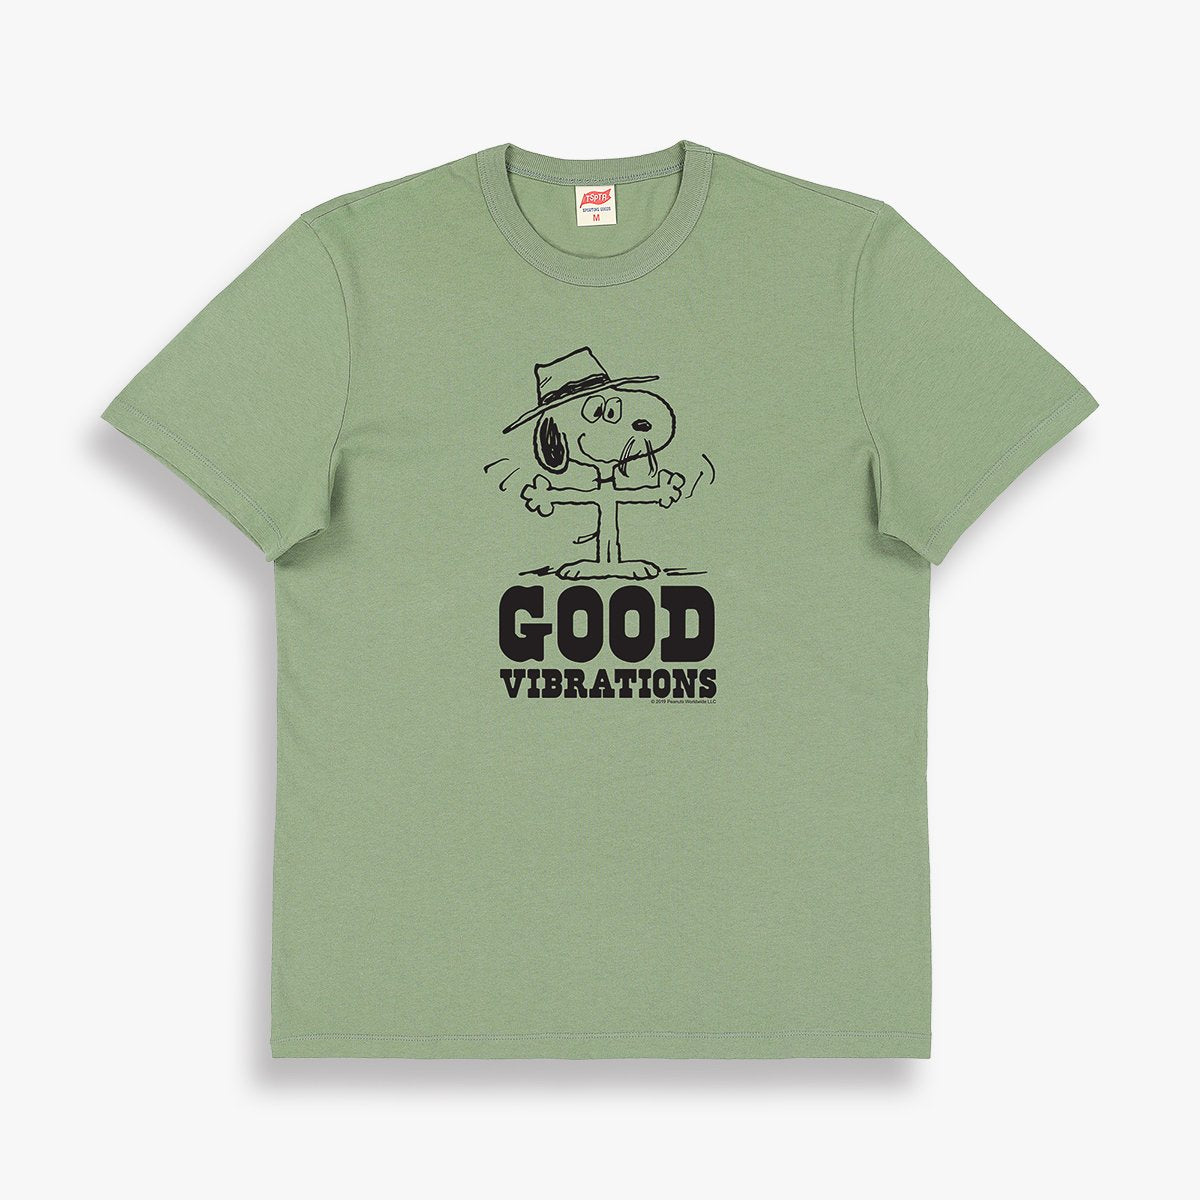 Good Vibrations T-Shirt in Olive